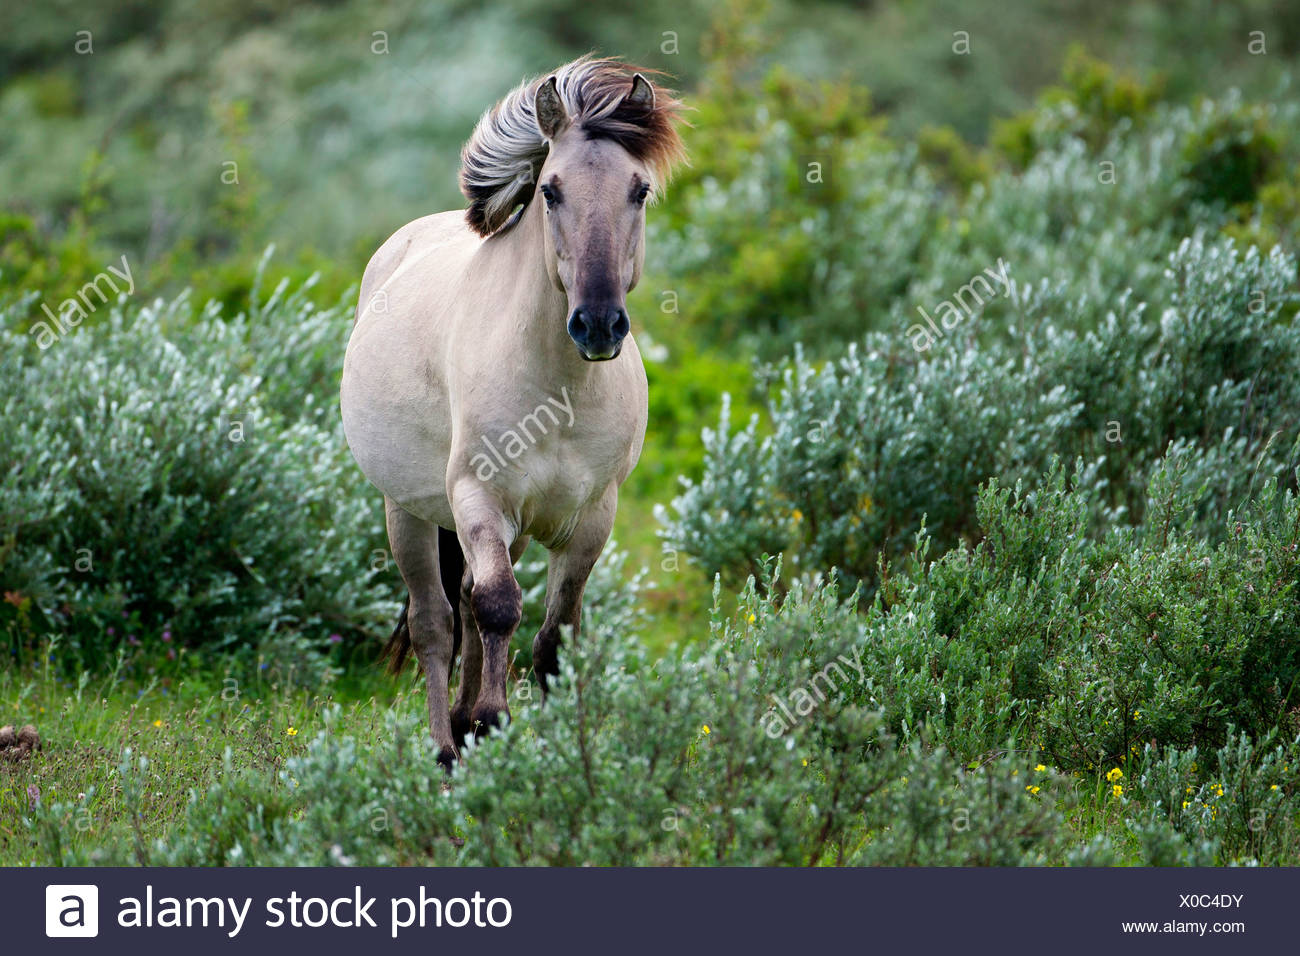 Konik horse (Equus przewalskii f. caballus), walking between shrubs, Belgium Stock Photo